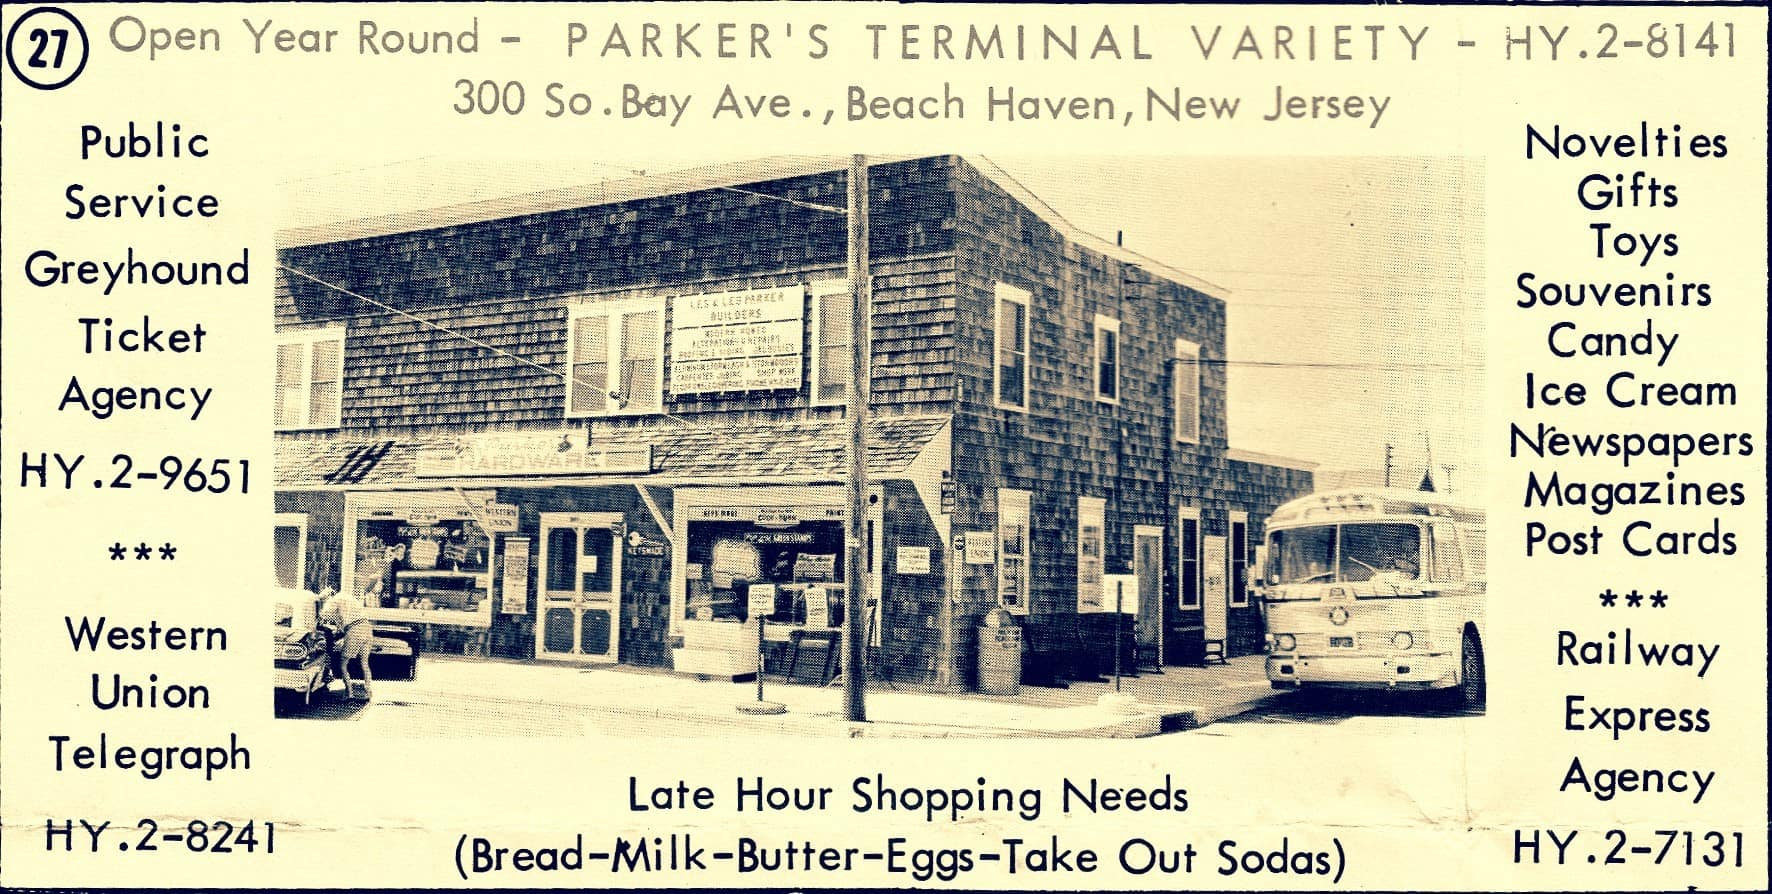 Parker's Terminal Variety in Beach Haven NJ from a 1963 ad.